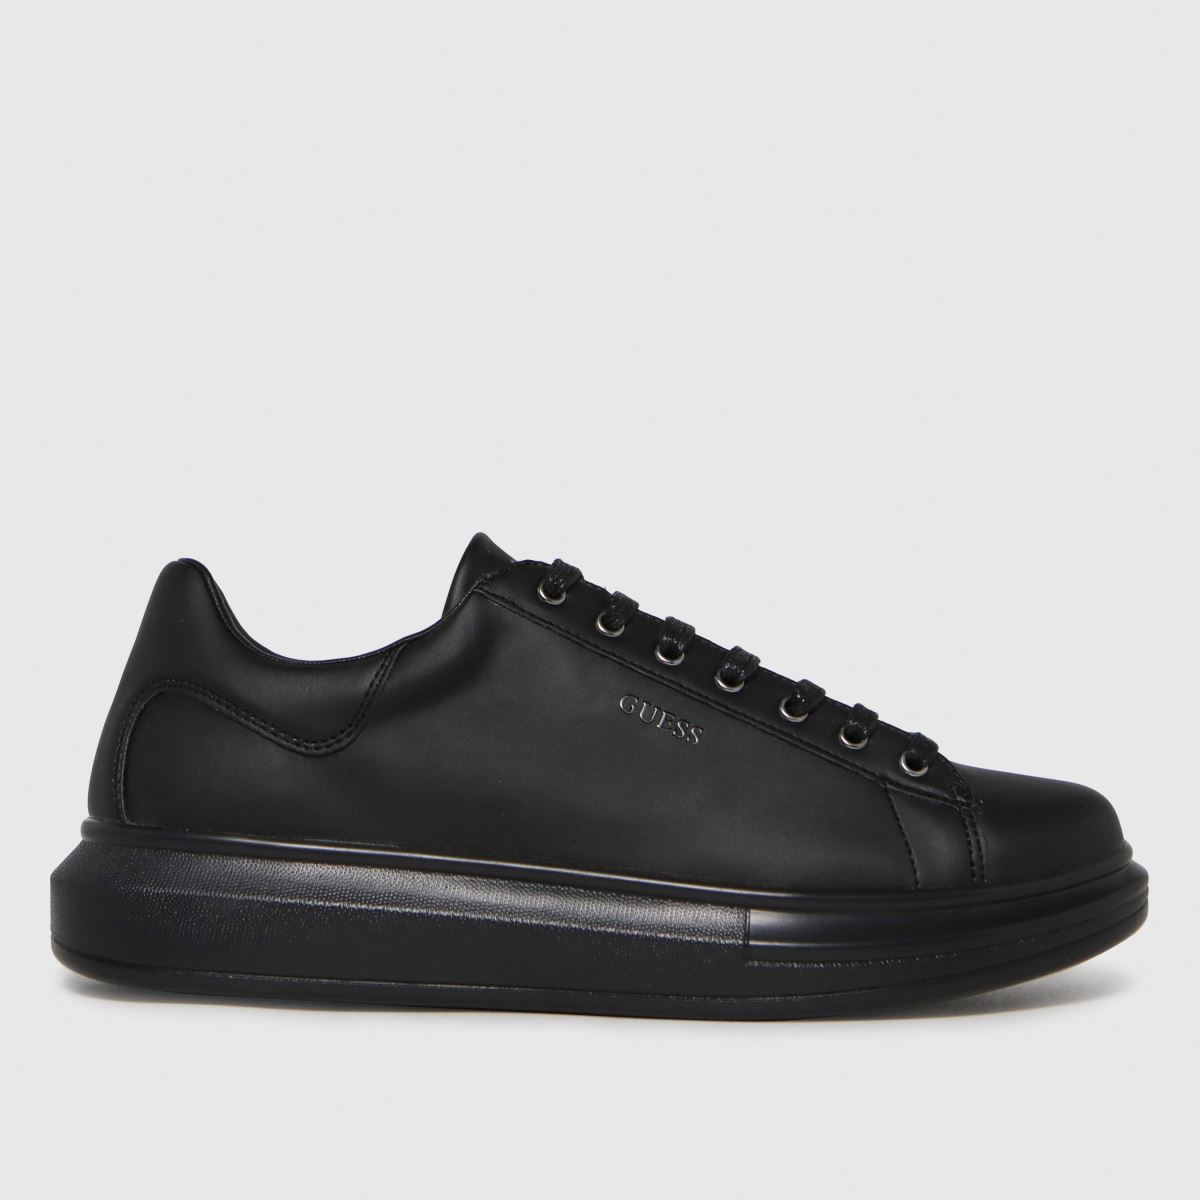 GUESS Black Salerno Trainers